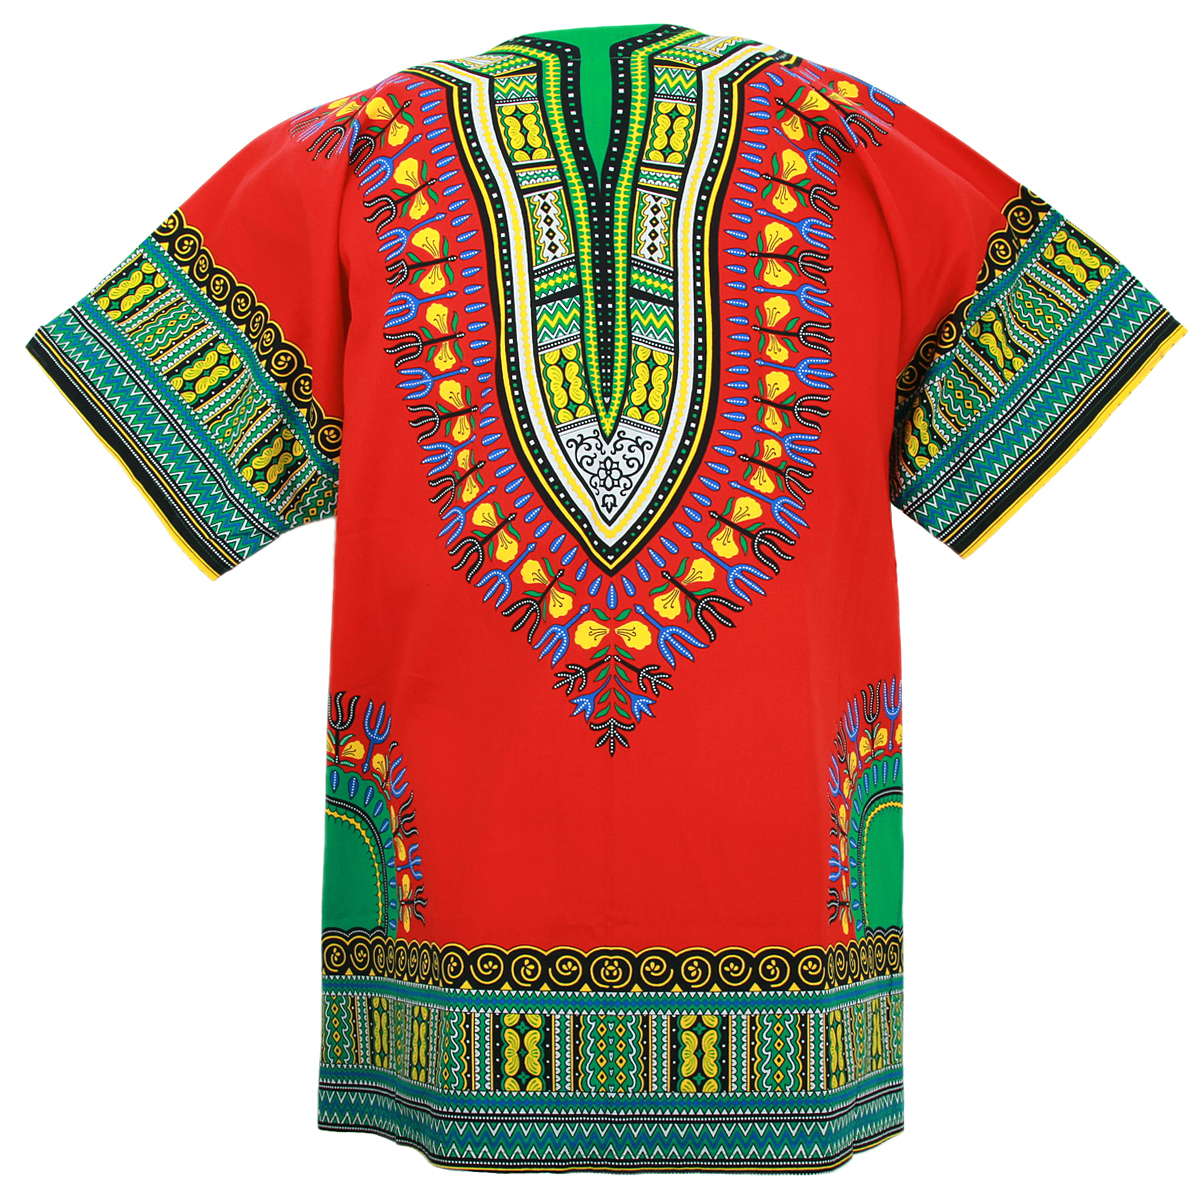 RED Colour in Sizes Unisex Traditional African Print Dashiki Shirt//Top//Blouse